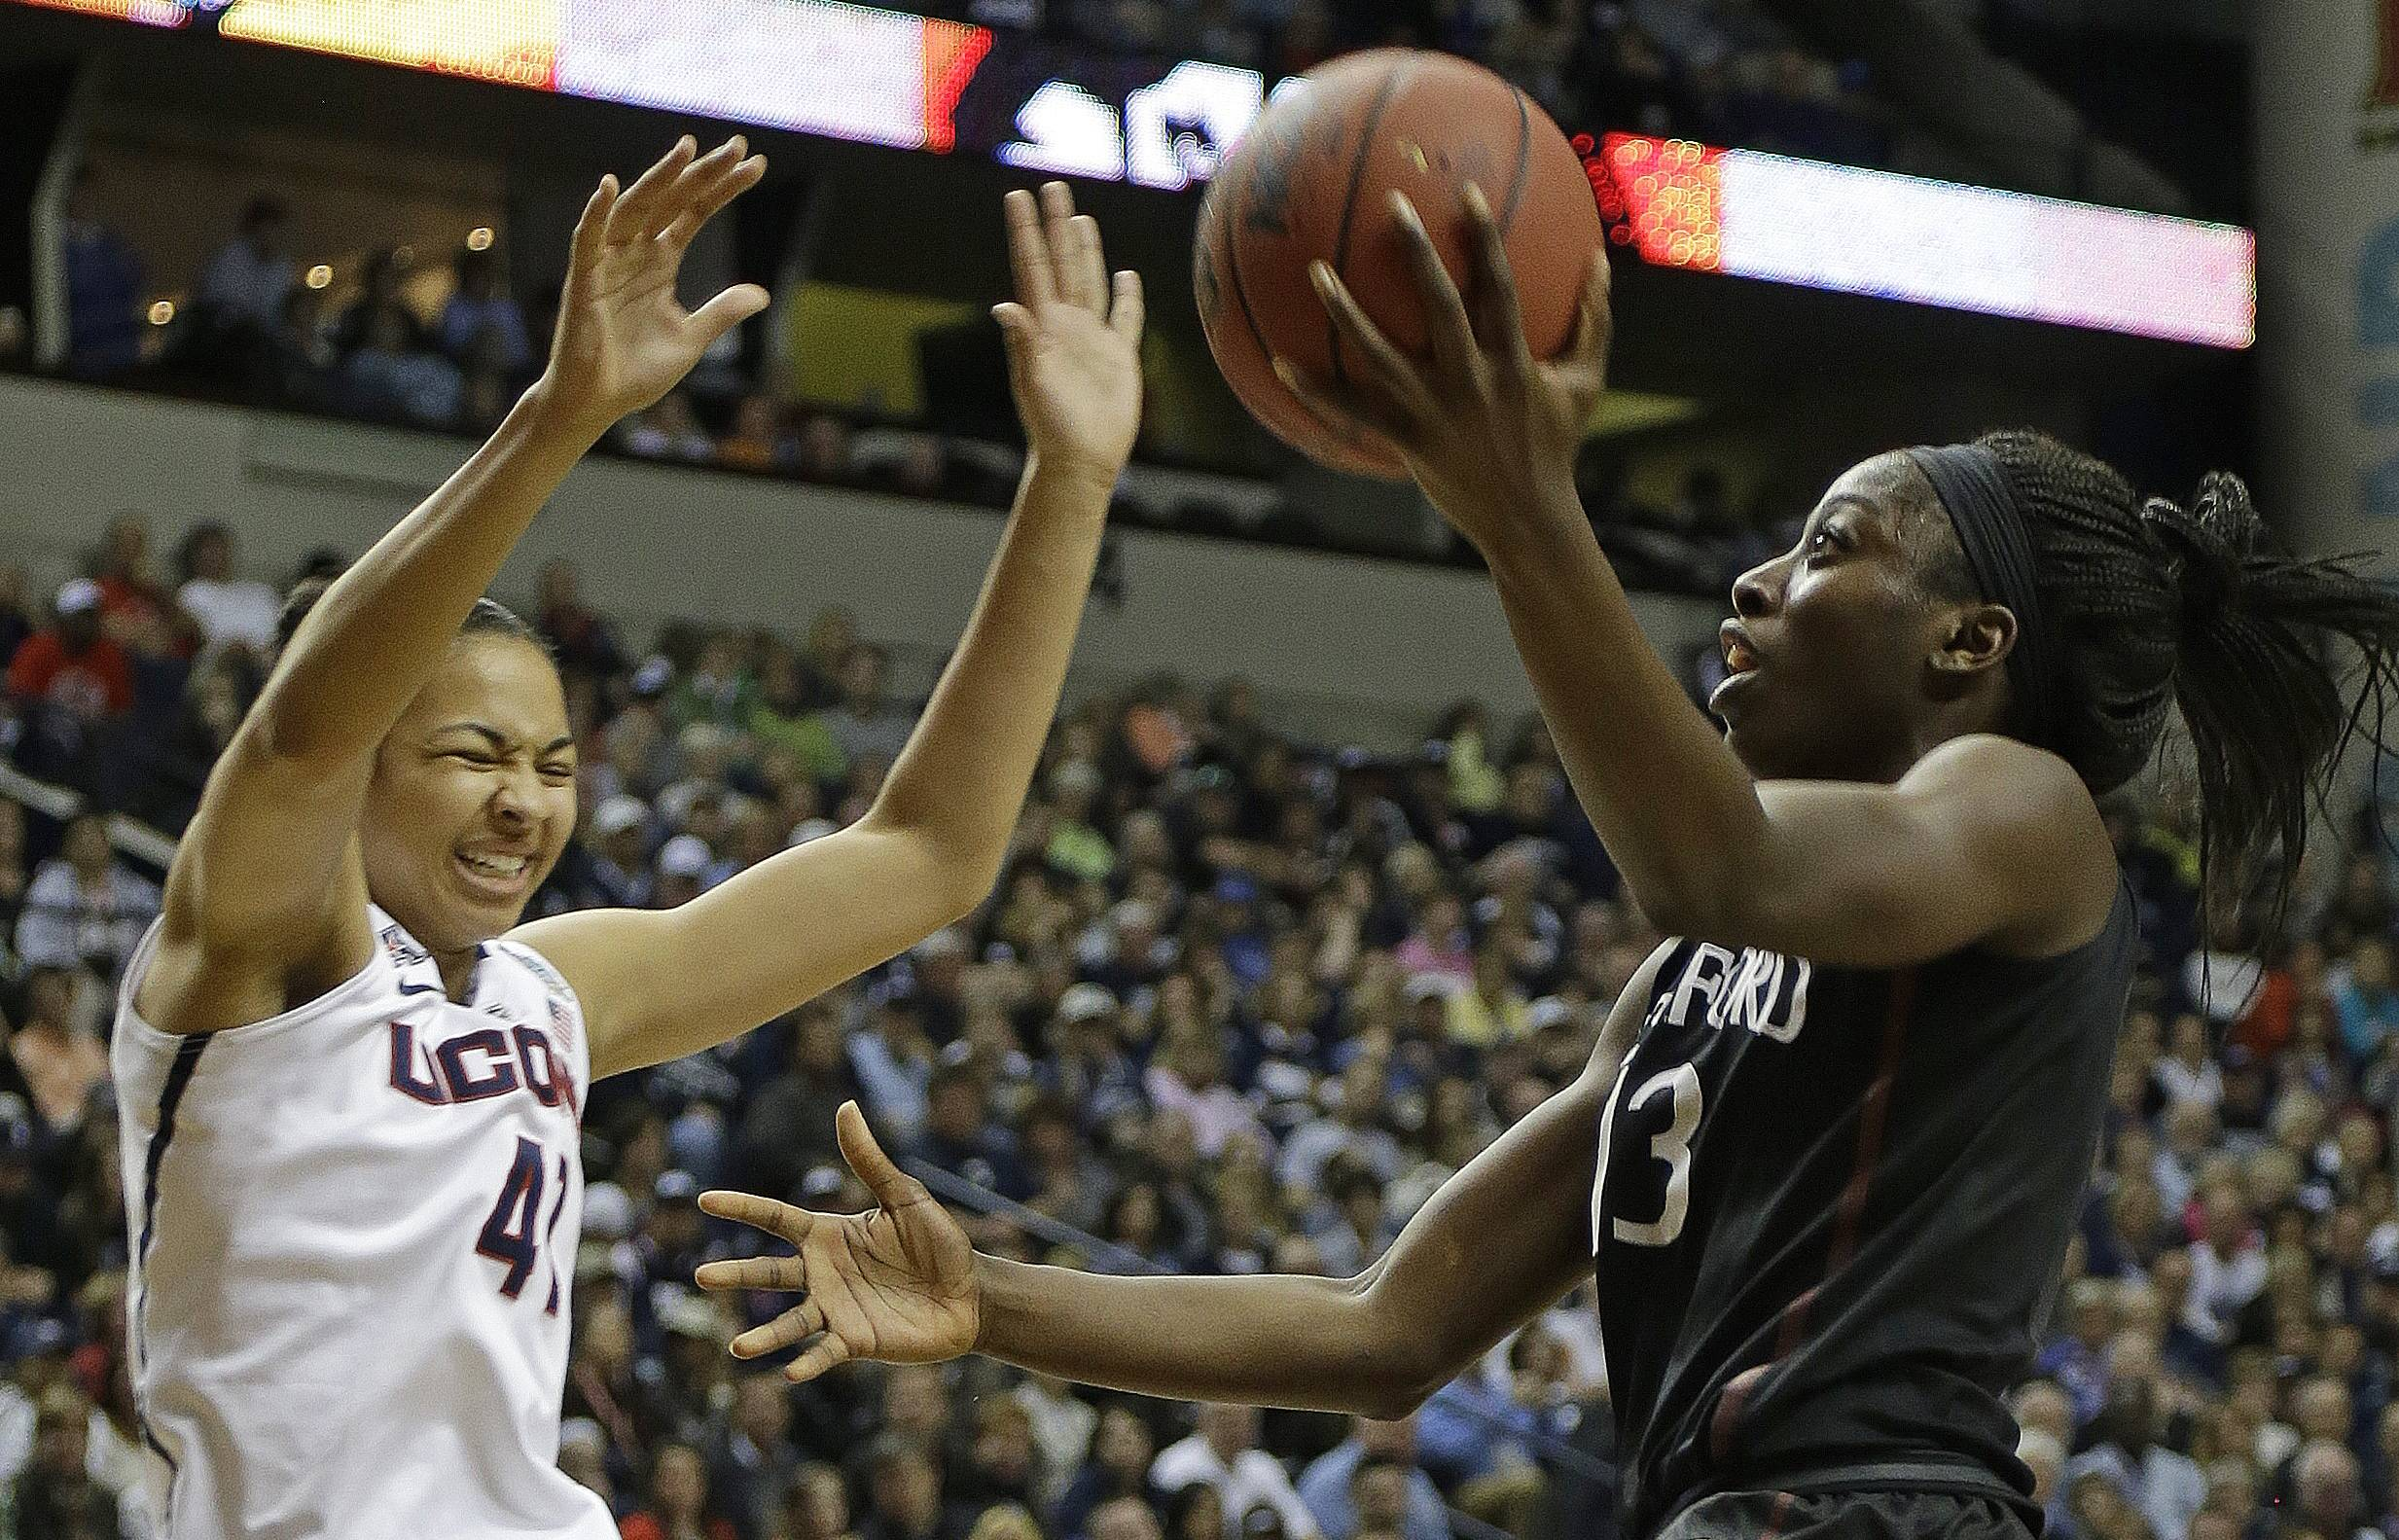 Stanford forward Chiney Ogwumike (13) shoots against Connecticut center Kiah Stokes (41) during the second half of the semifinal game in the Final Four of the NCAA women's college basketball tournament, Sunday, April 6, 2014, in Nashville, Tenn.